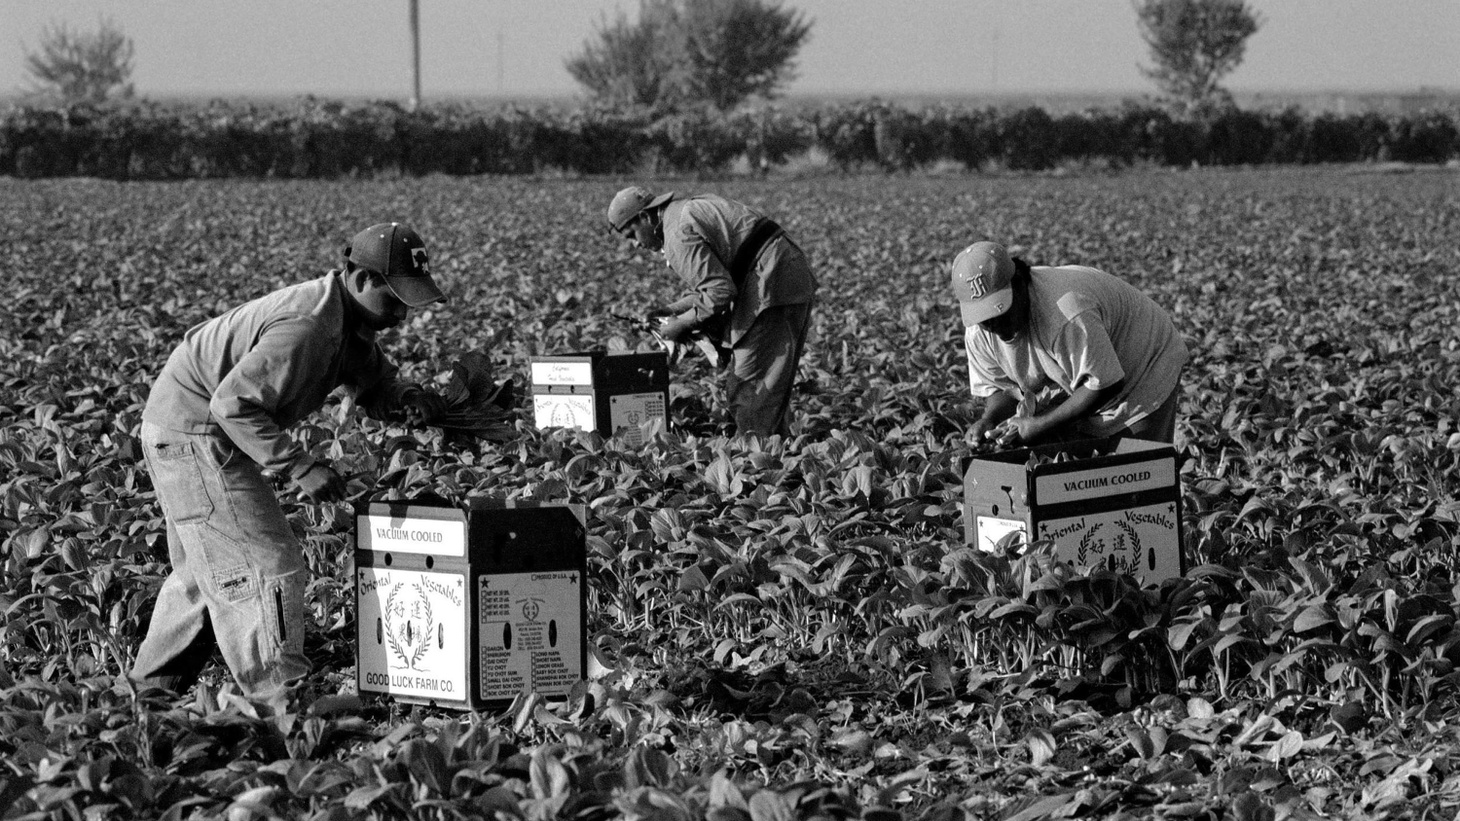 Farm workers in Fresno, California are experiencing all sorts of challenges during this pandemic.